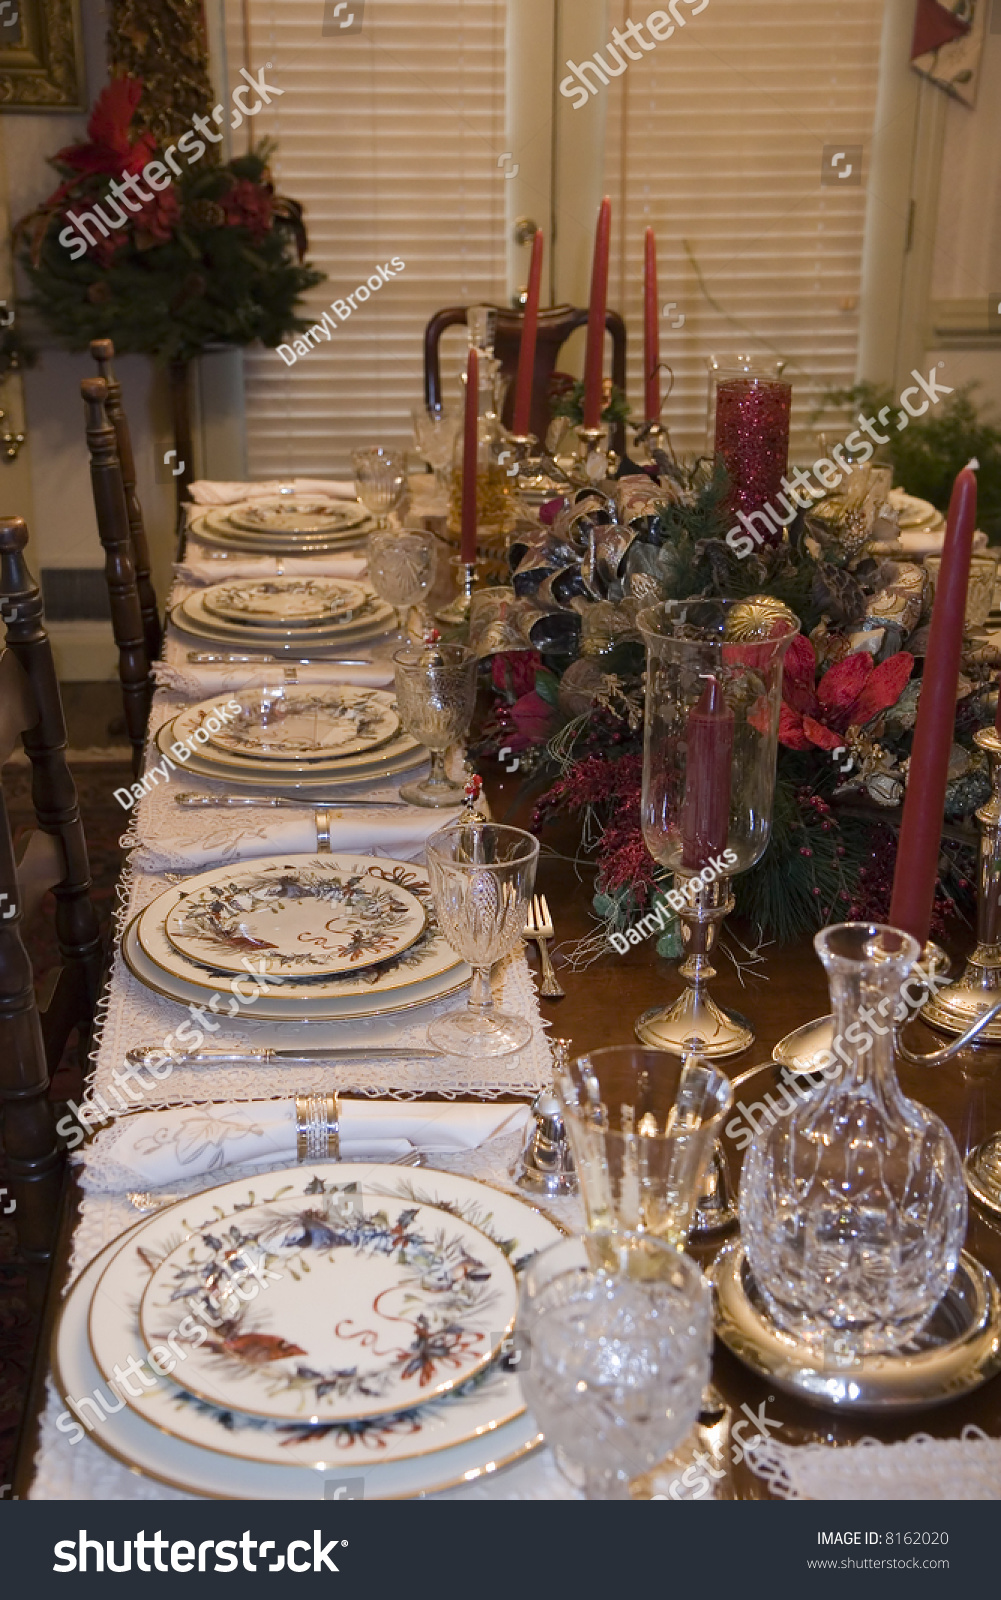 A Formal Table Set For A Christmas Dinner Stock Photo